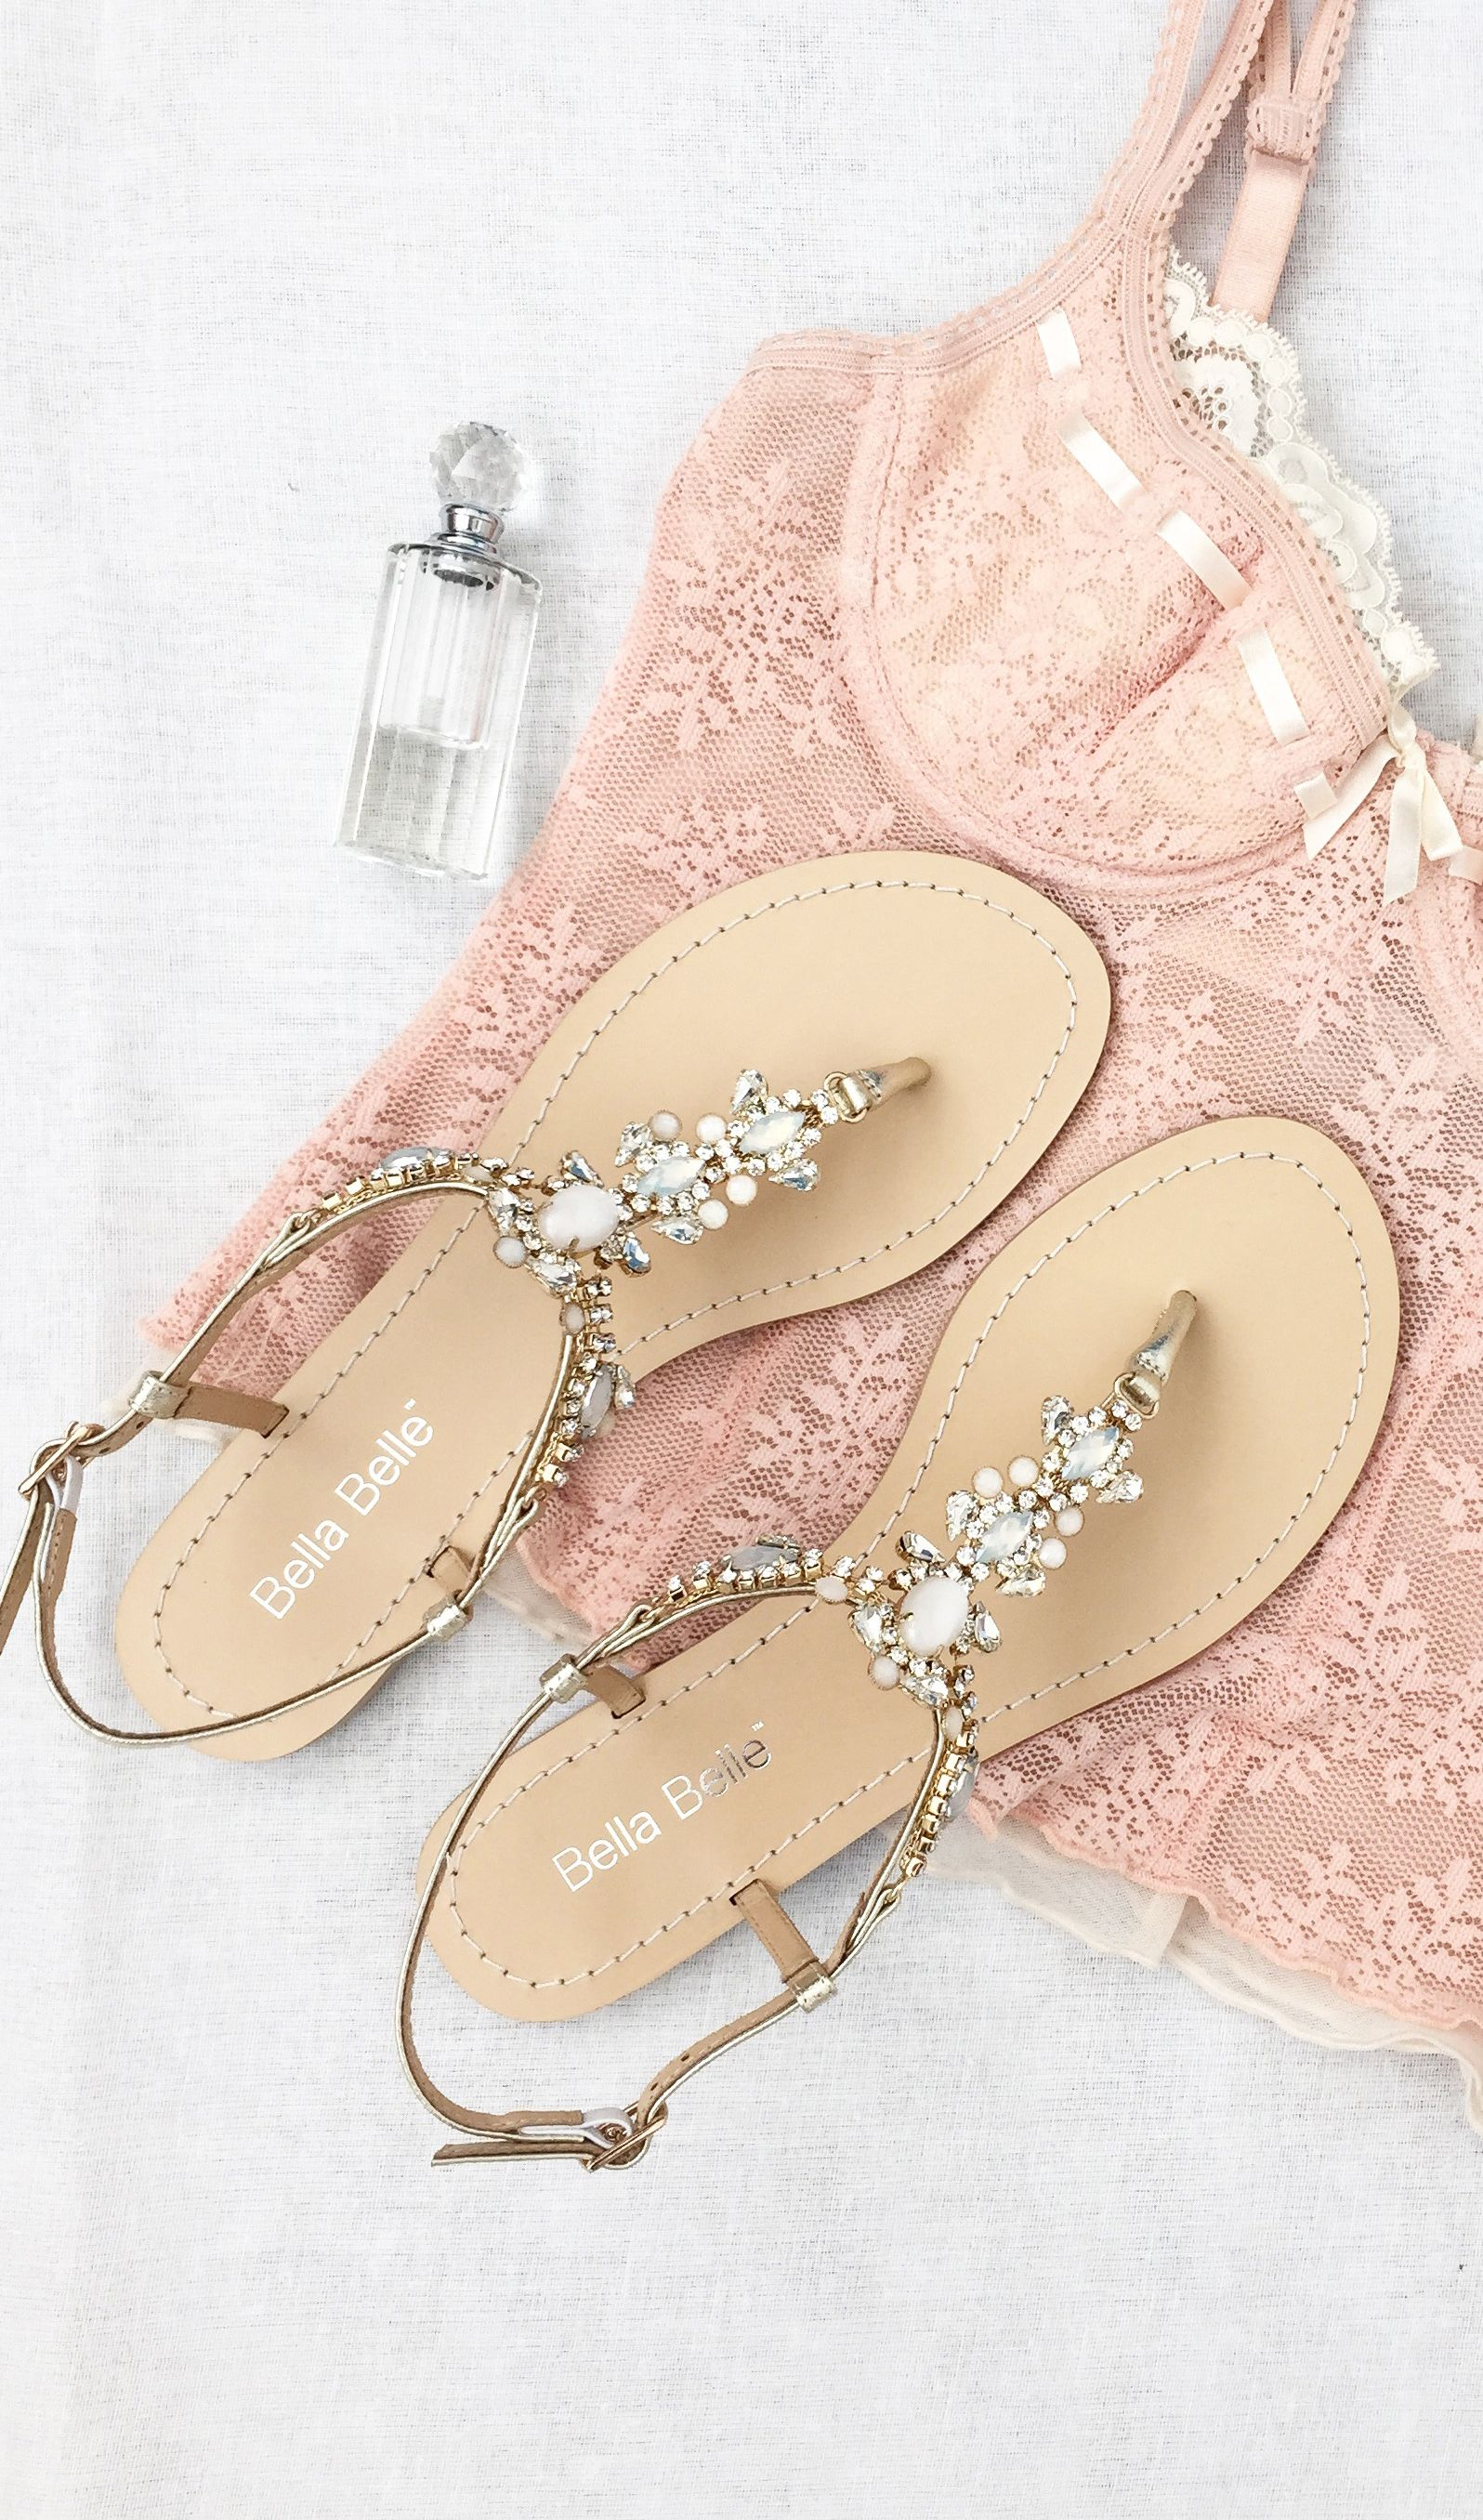 Crystal Jewel Gold Dress Sandals Weddings Are Pretty